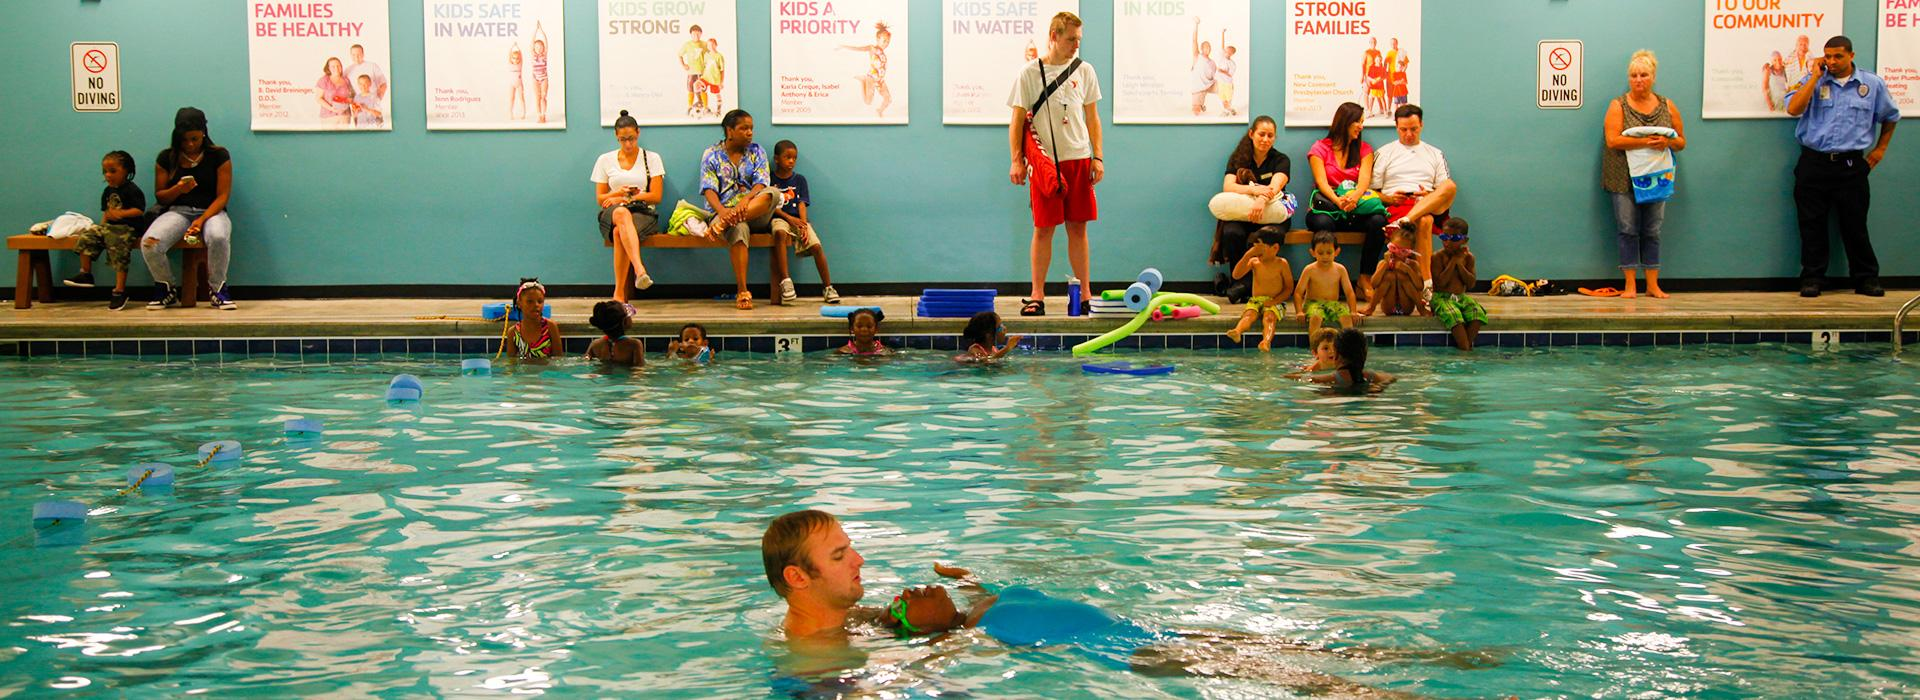 Indian River Family YMCA Indoor Pool